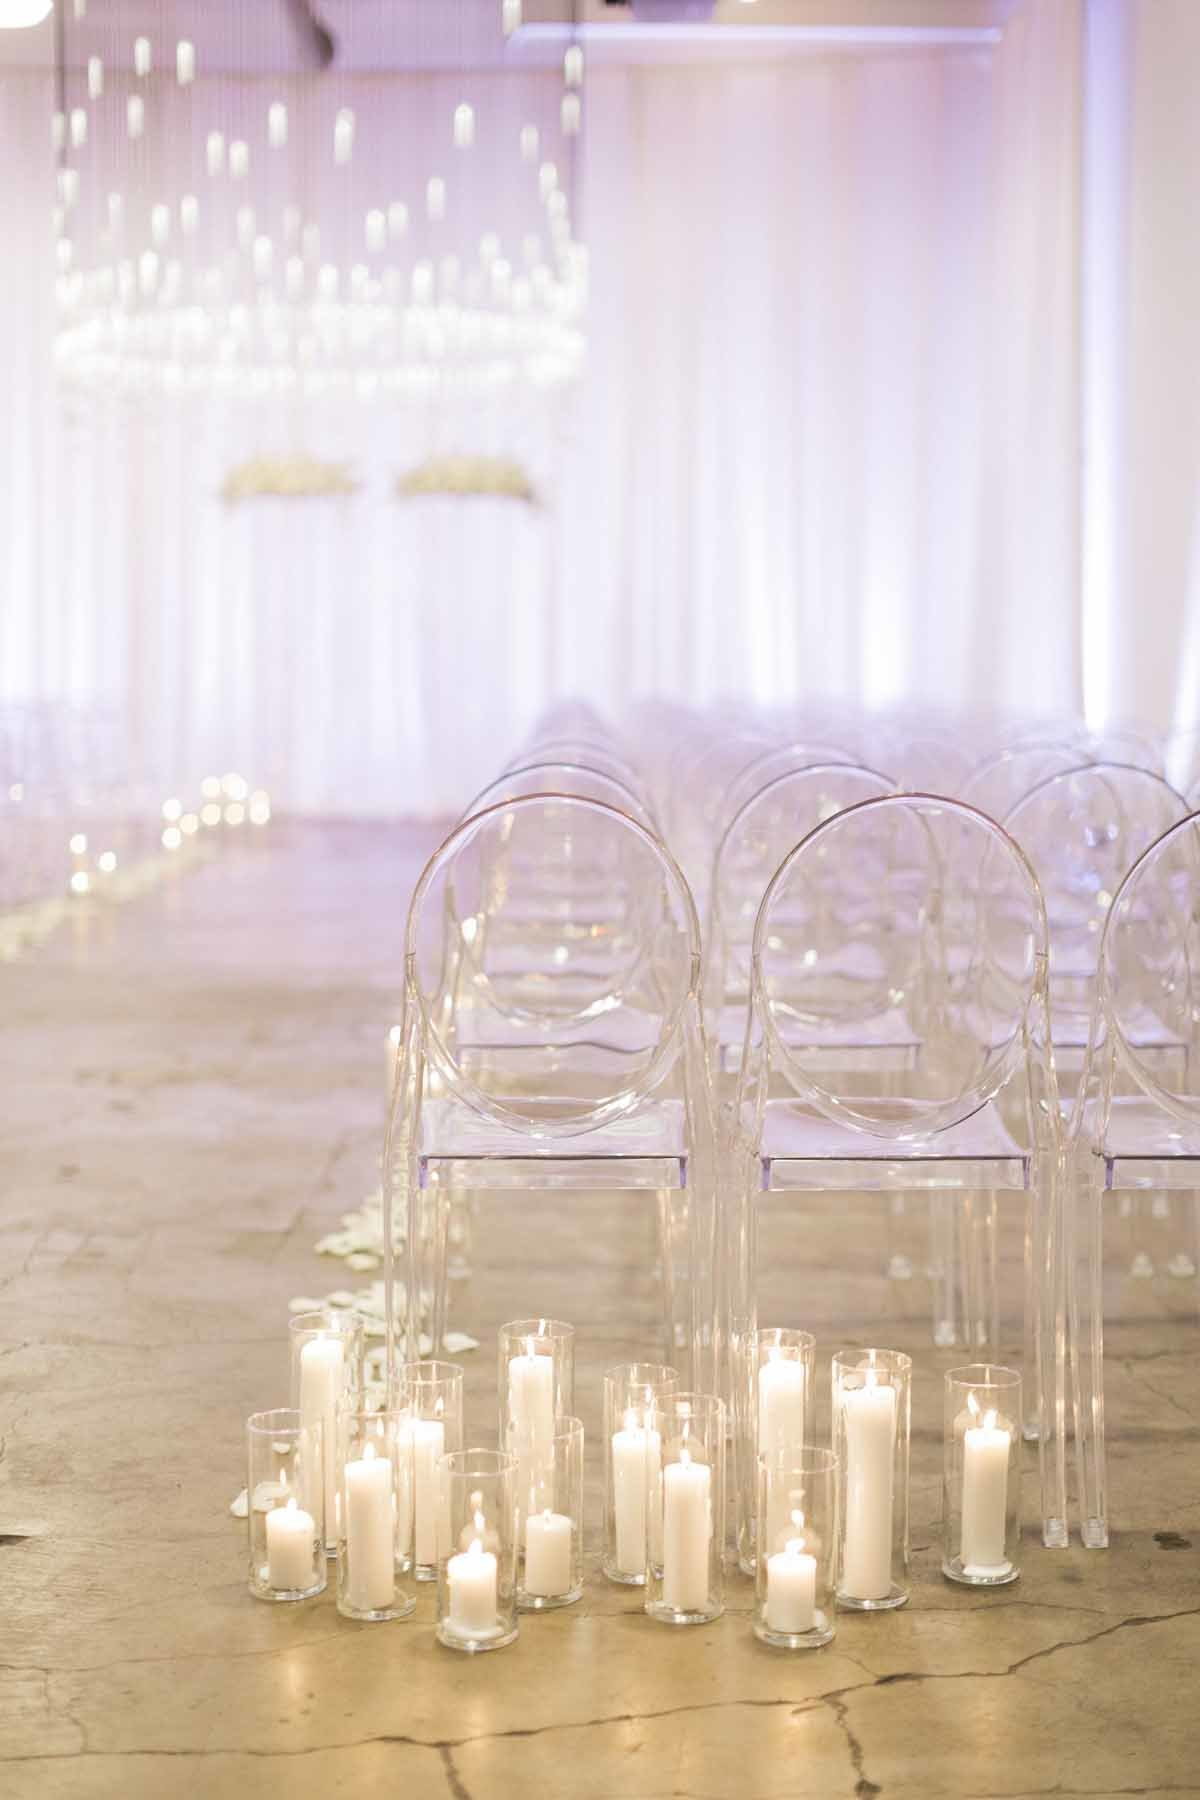 What a dreamy ethereal white candlelit wedding ceremony